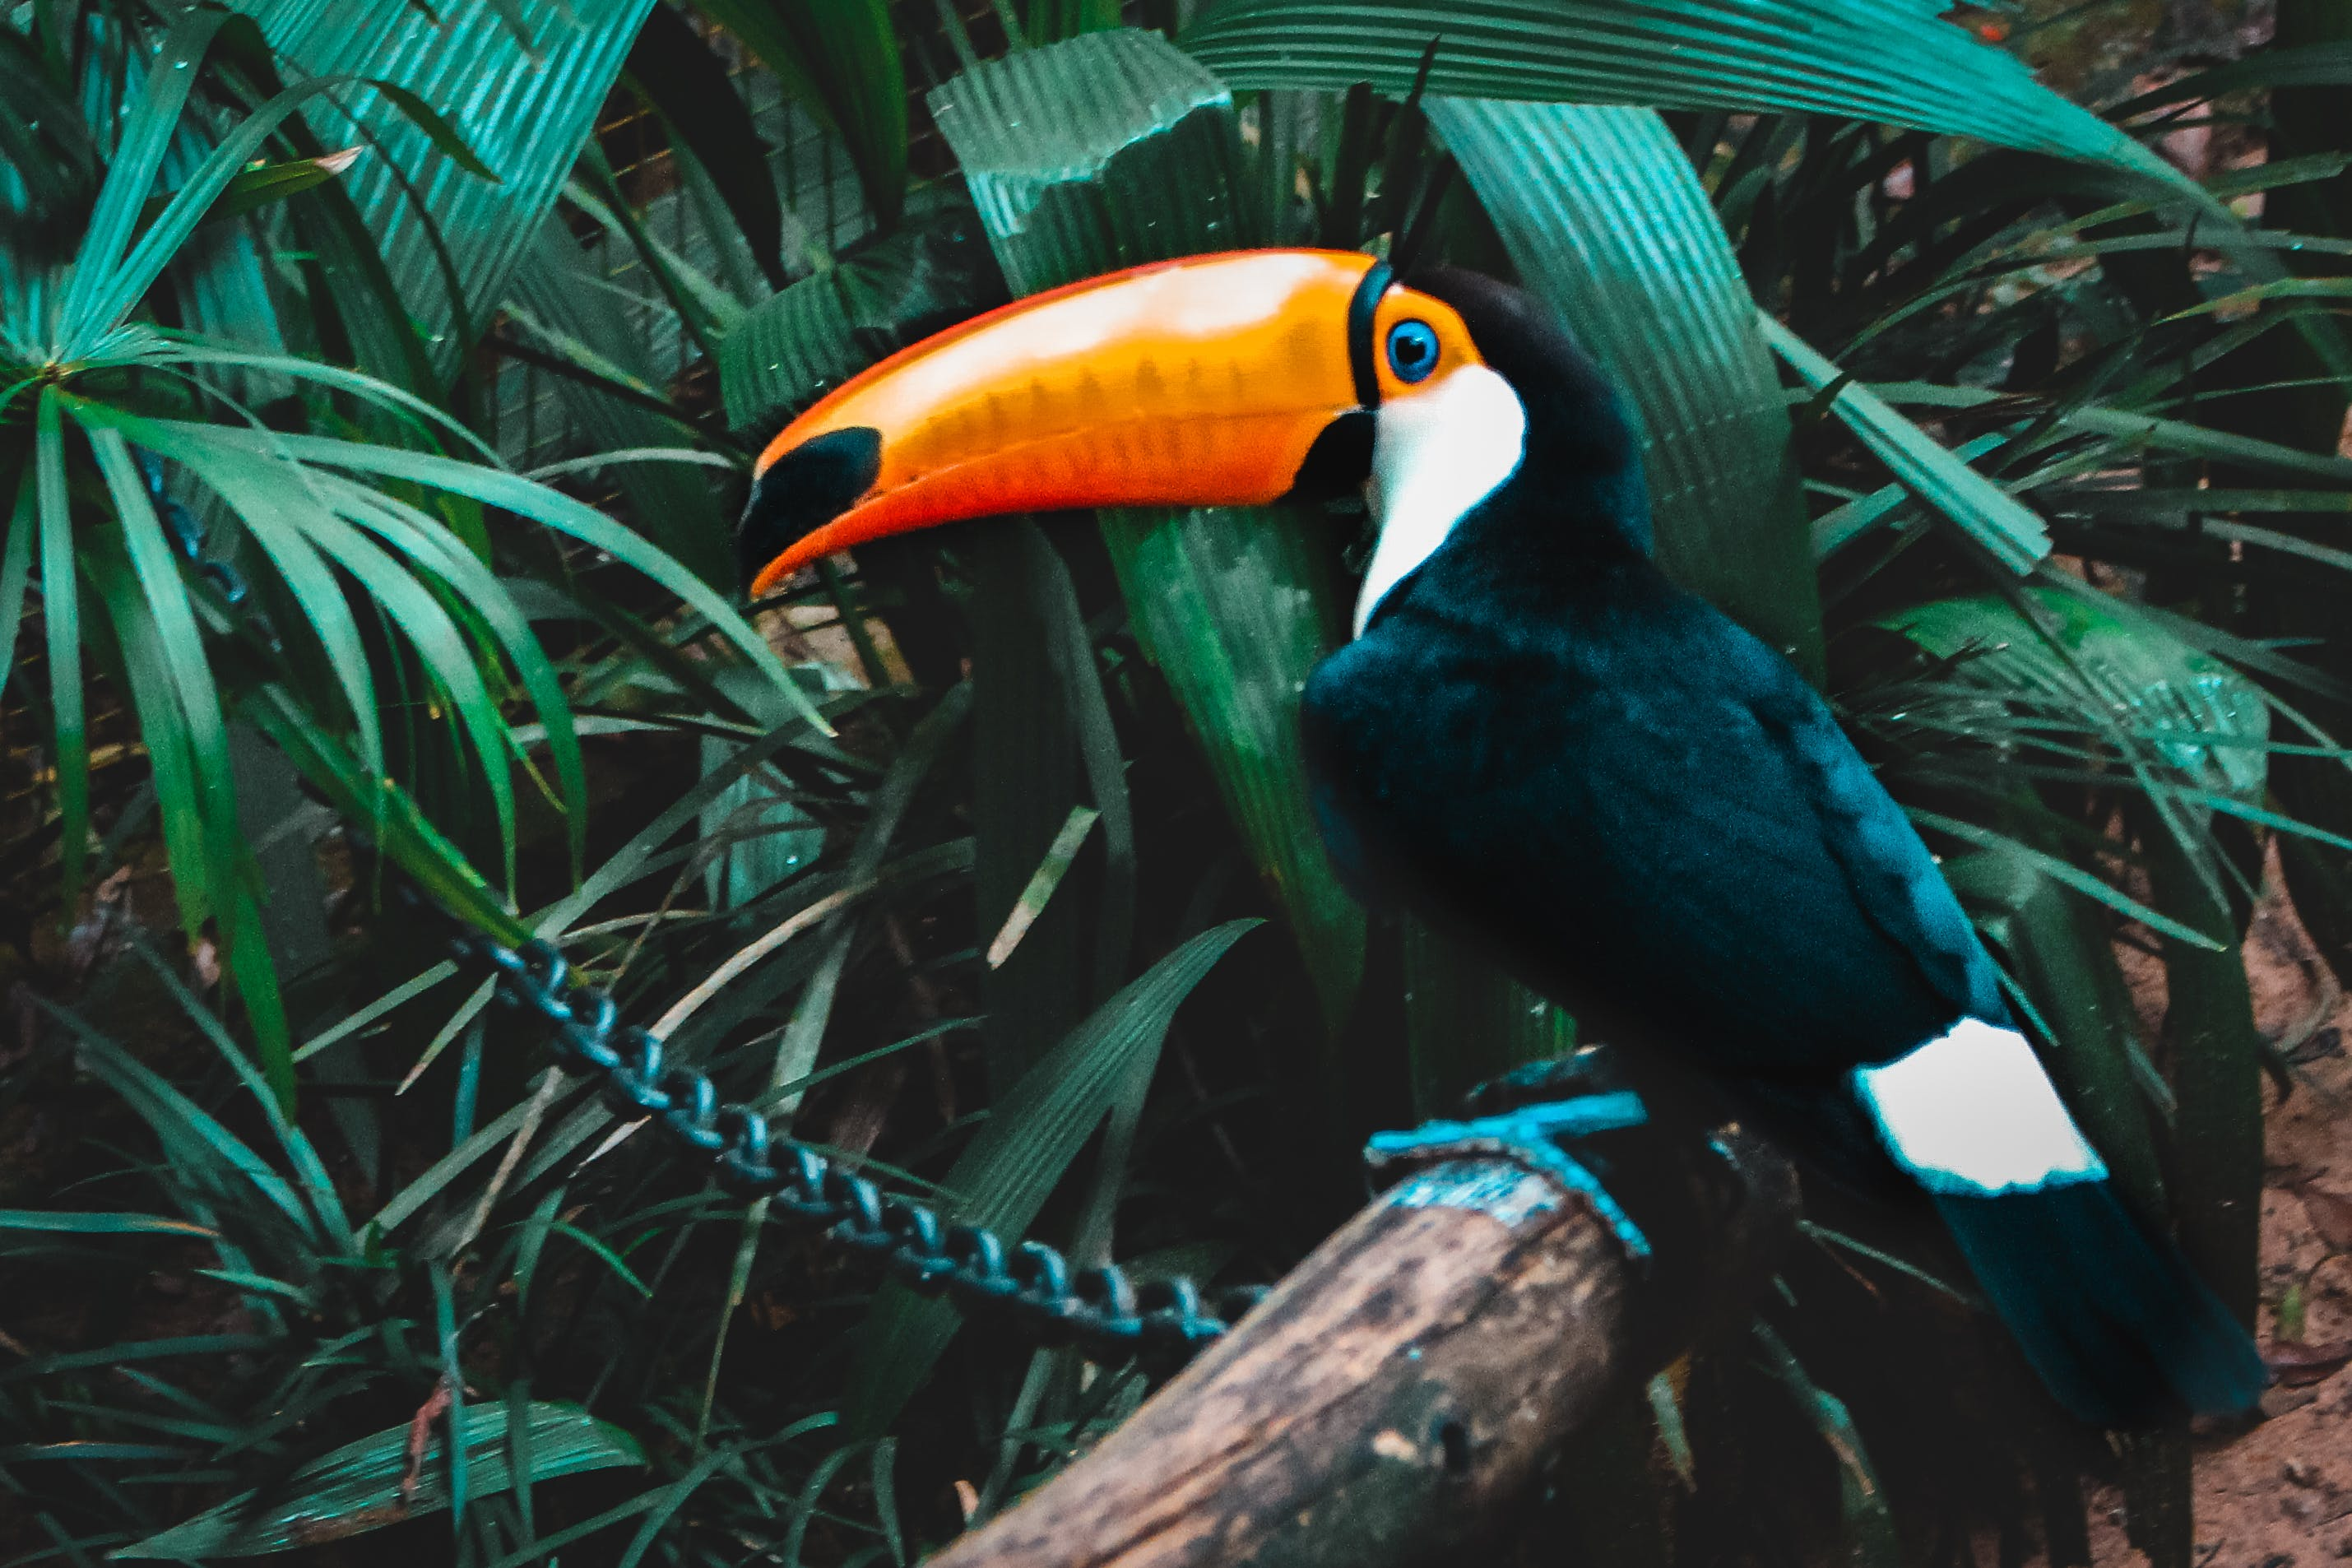 Selective Focus Photo Of Toco Toucan Perched